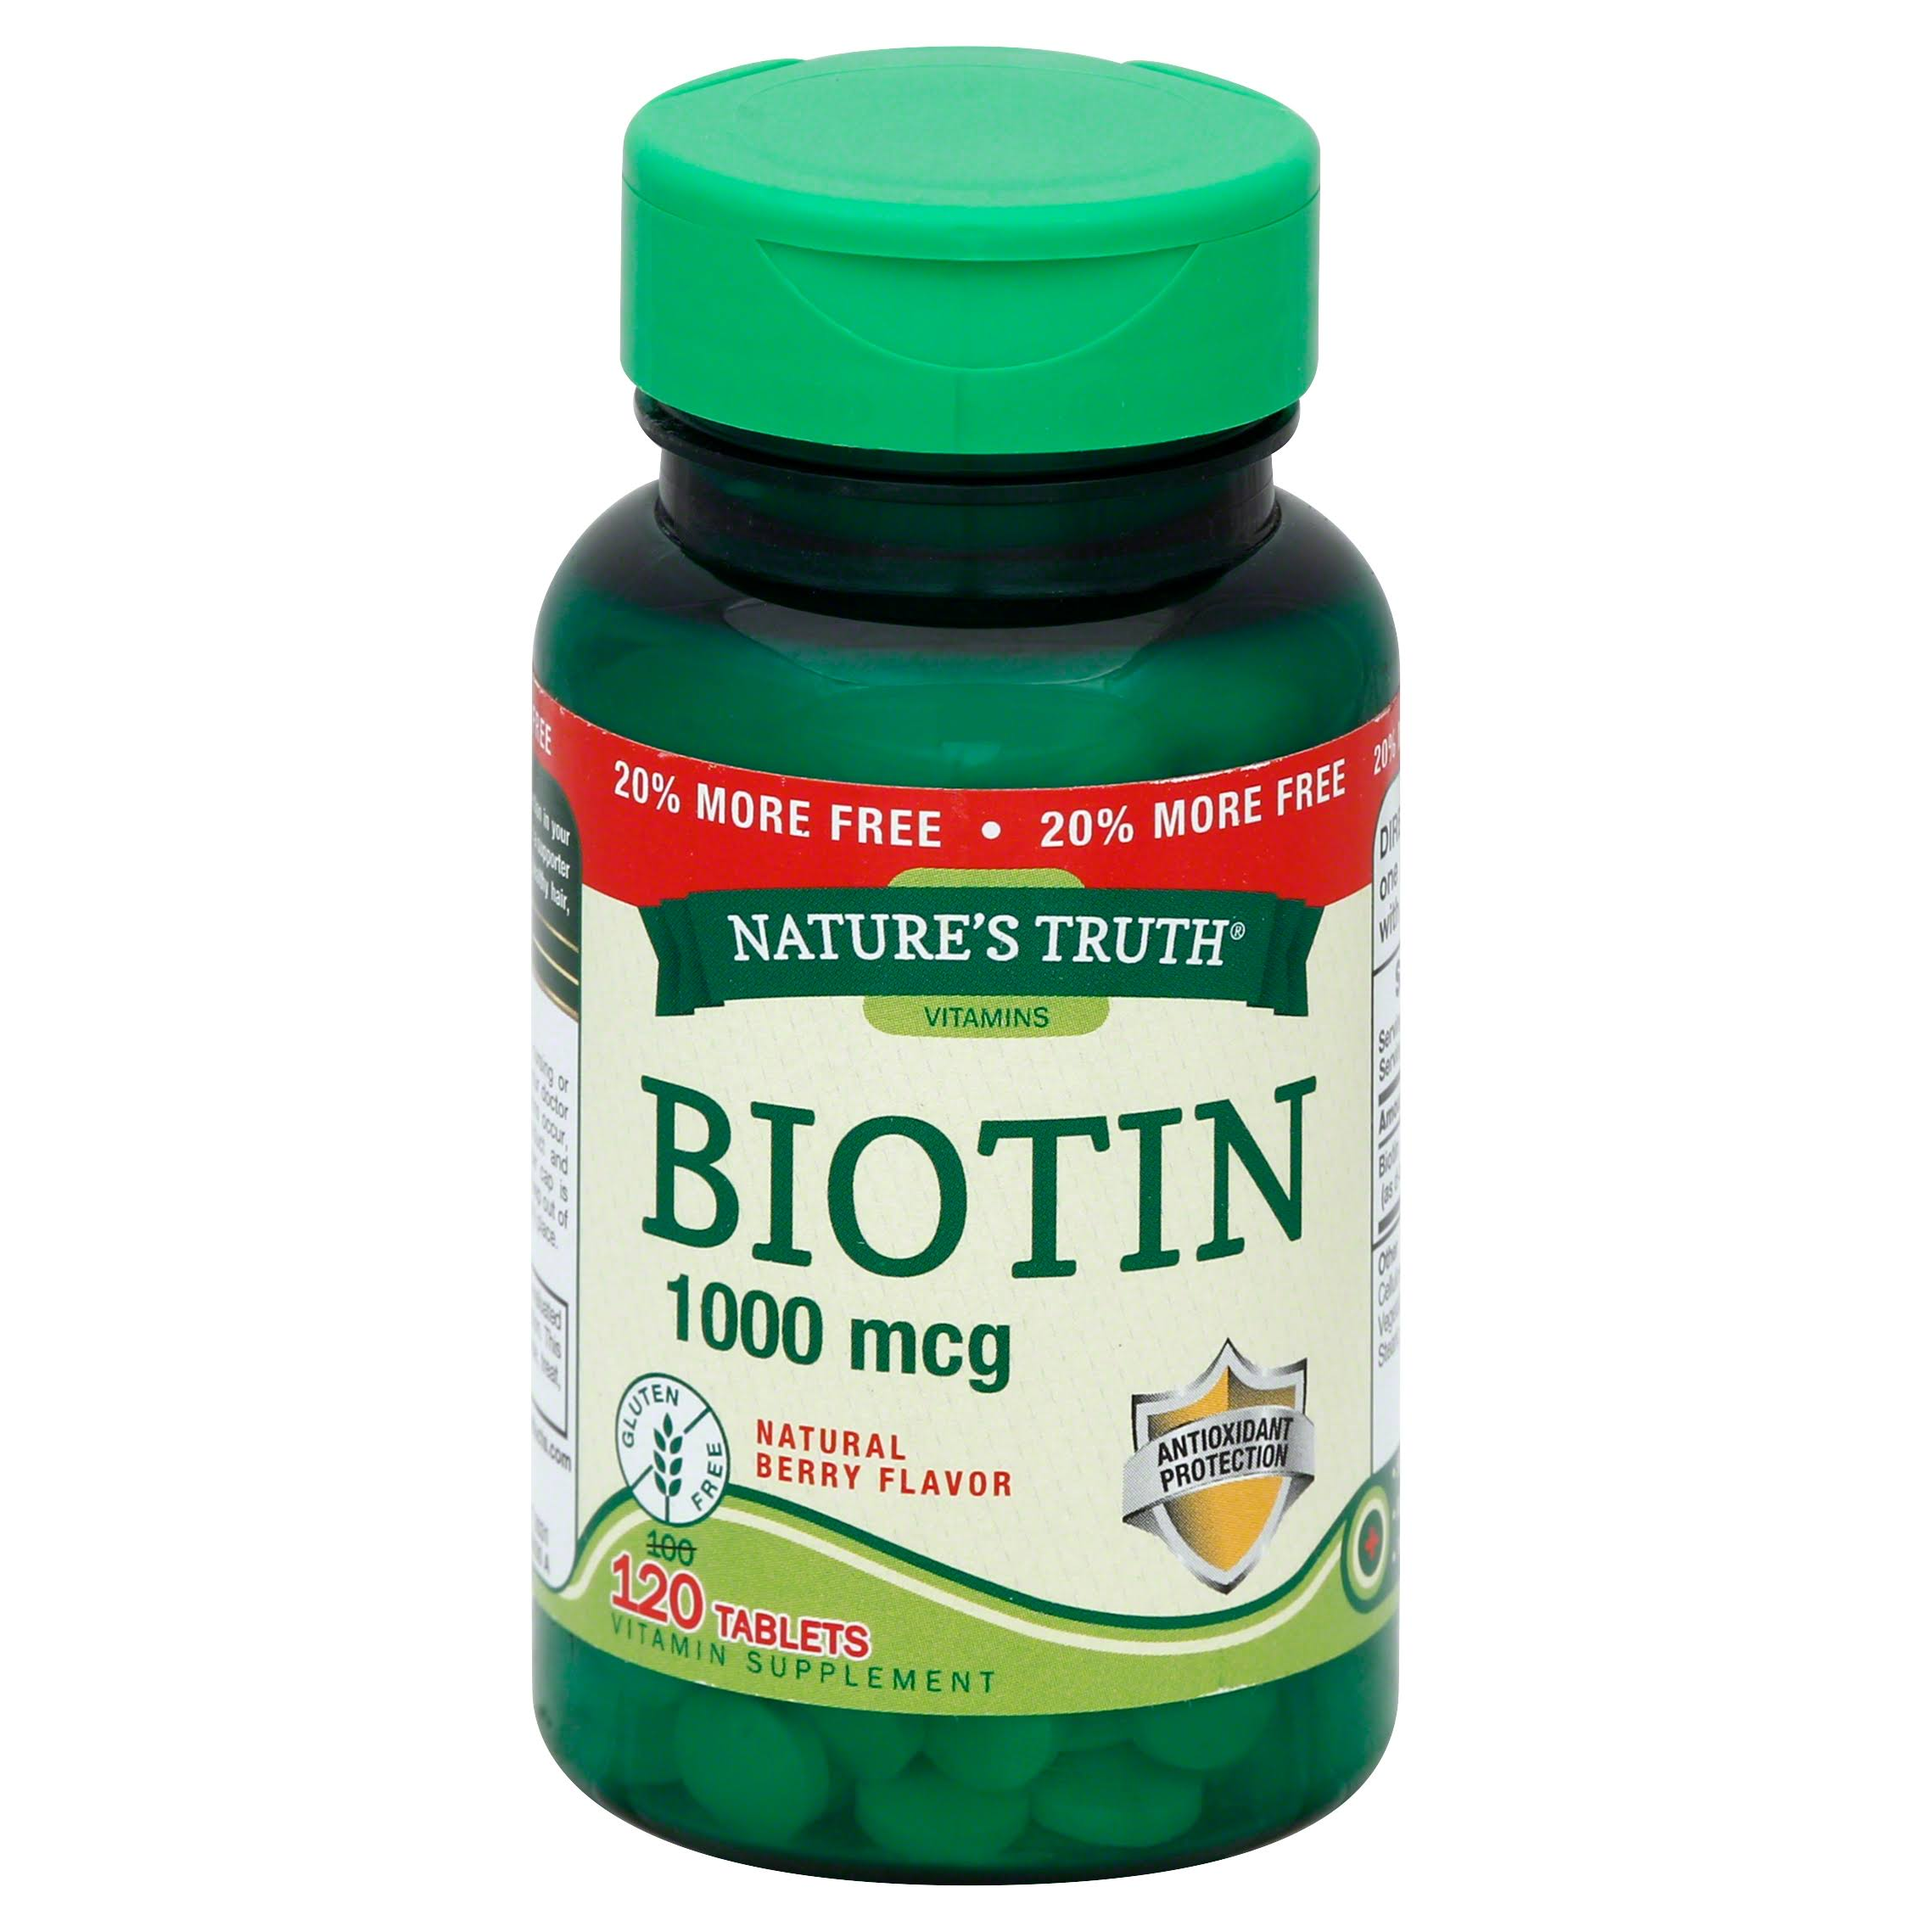 Nature's Truth Biotin - 1000mcg, x120